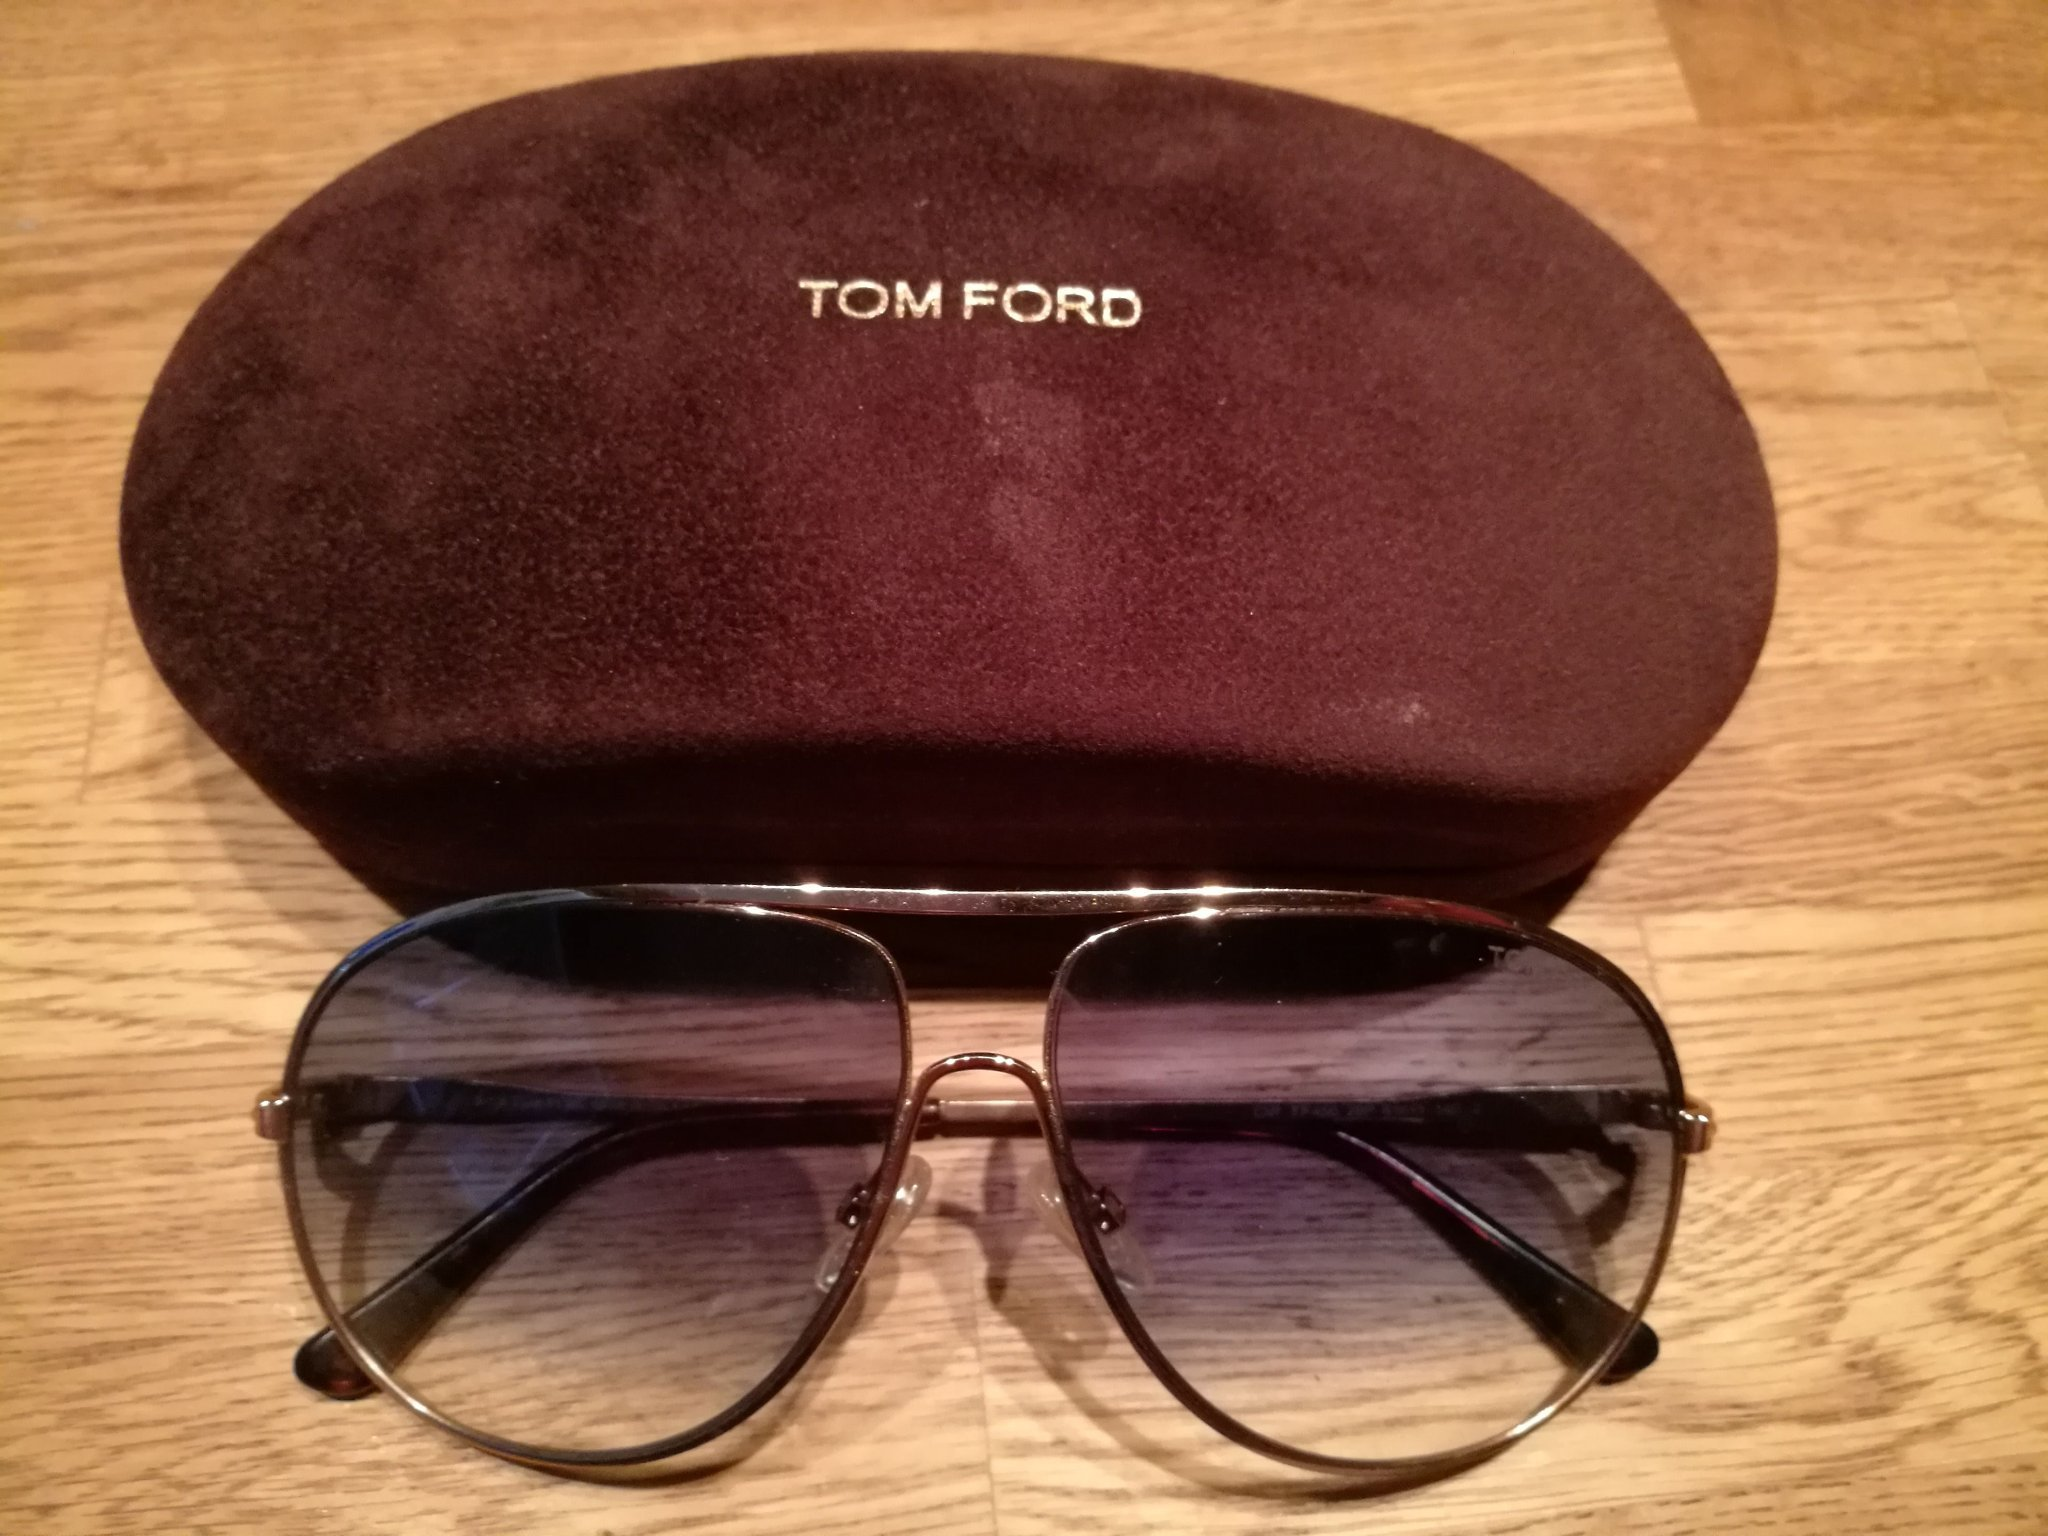 d45ccd3ac7 Tom Ford solglasögon (350460030) ᐈ Köp på Tradera